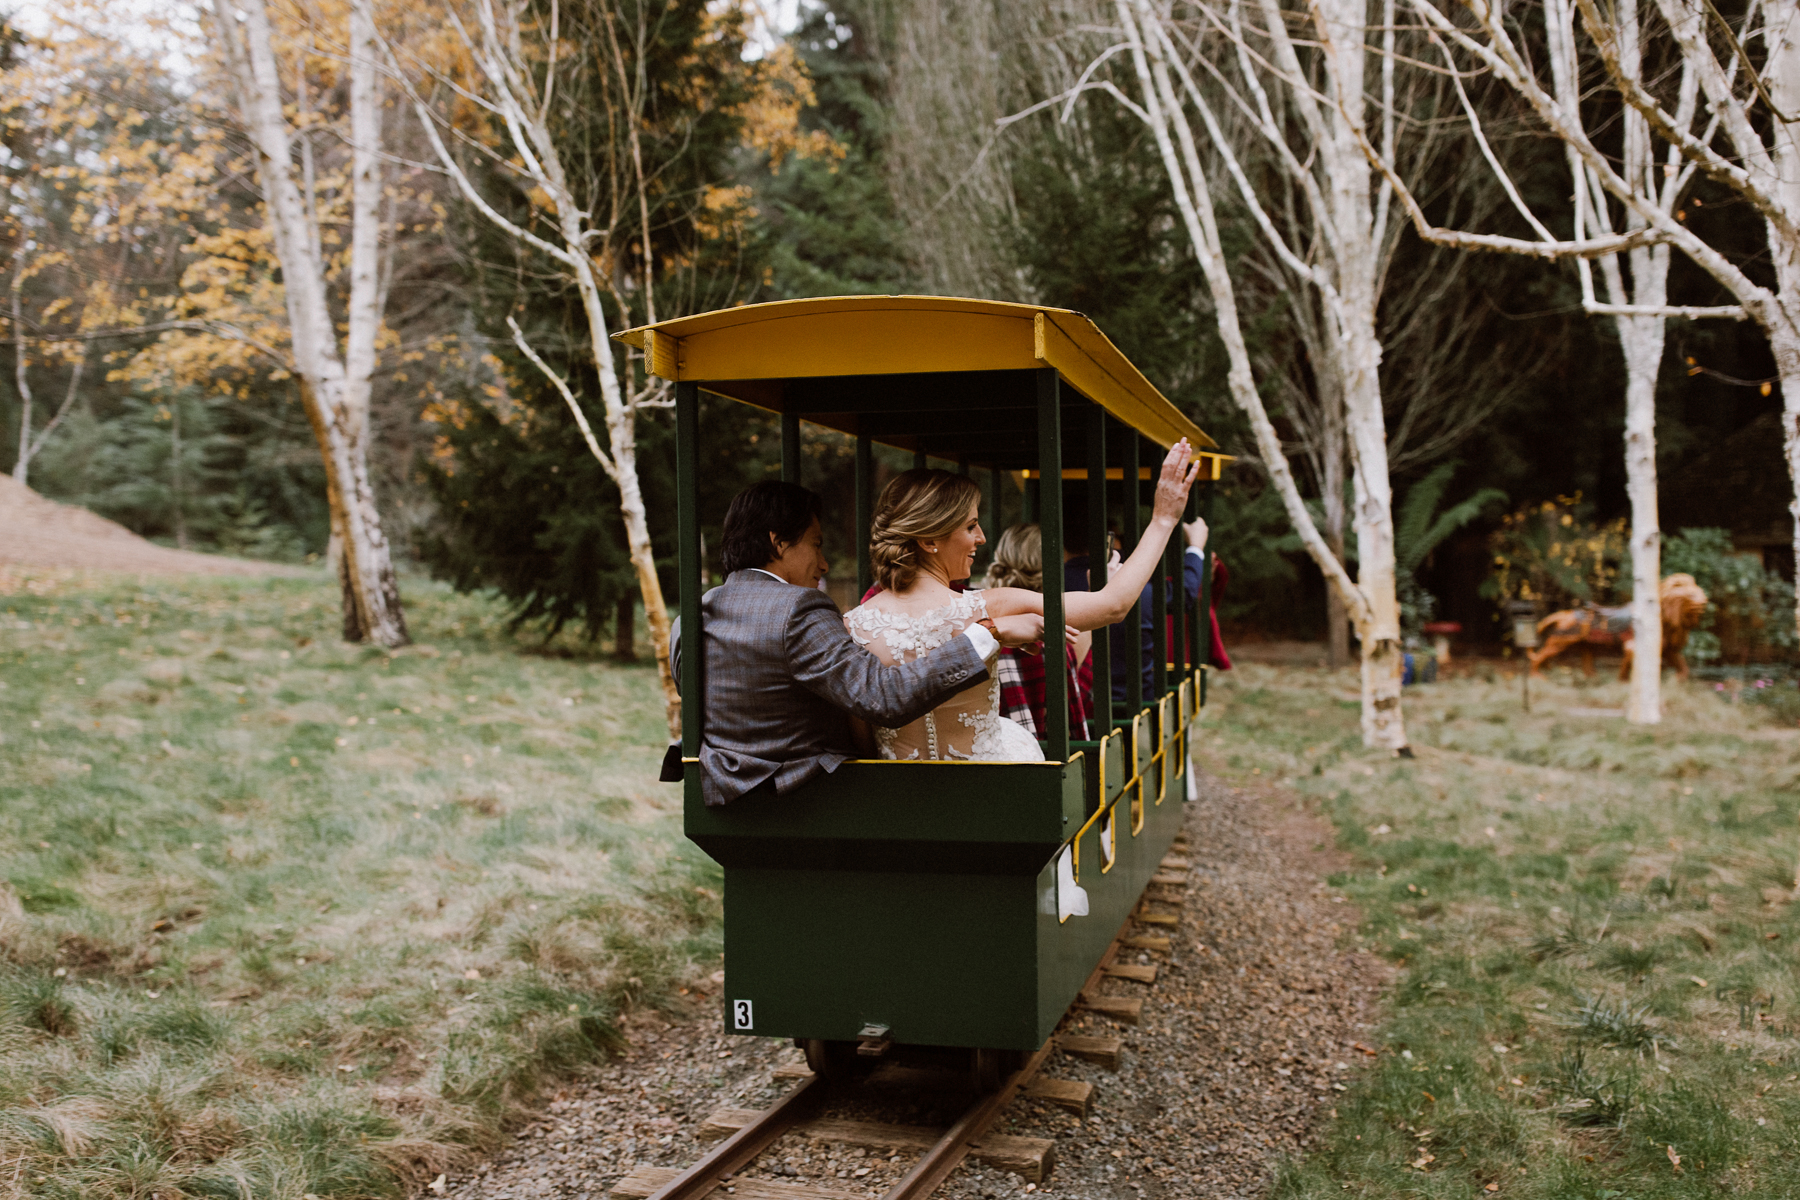 Bride & Groom riding the train at Nestldown.